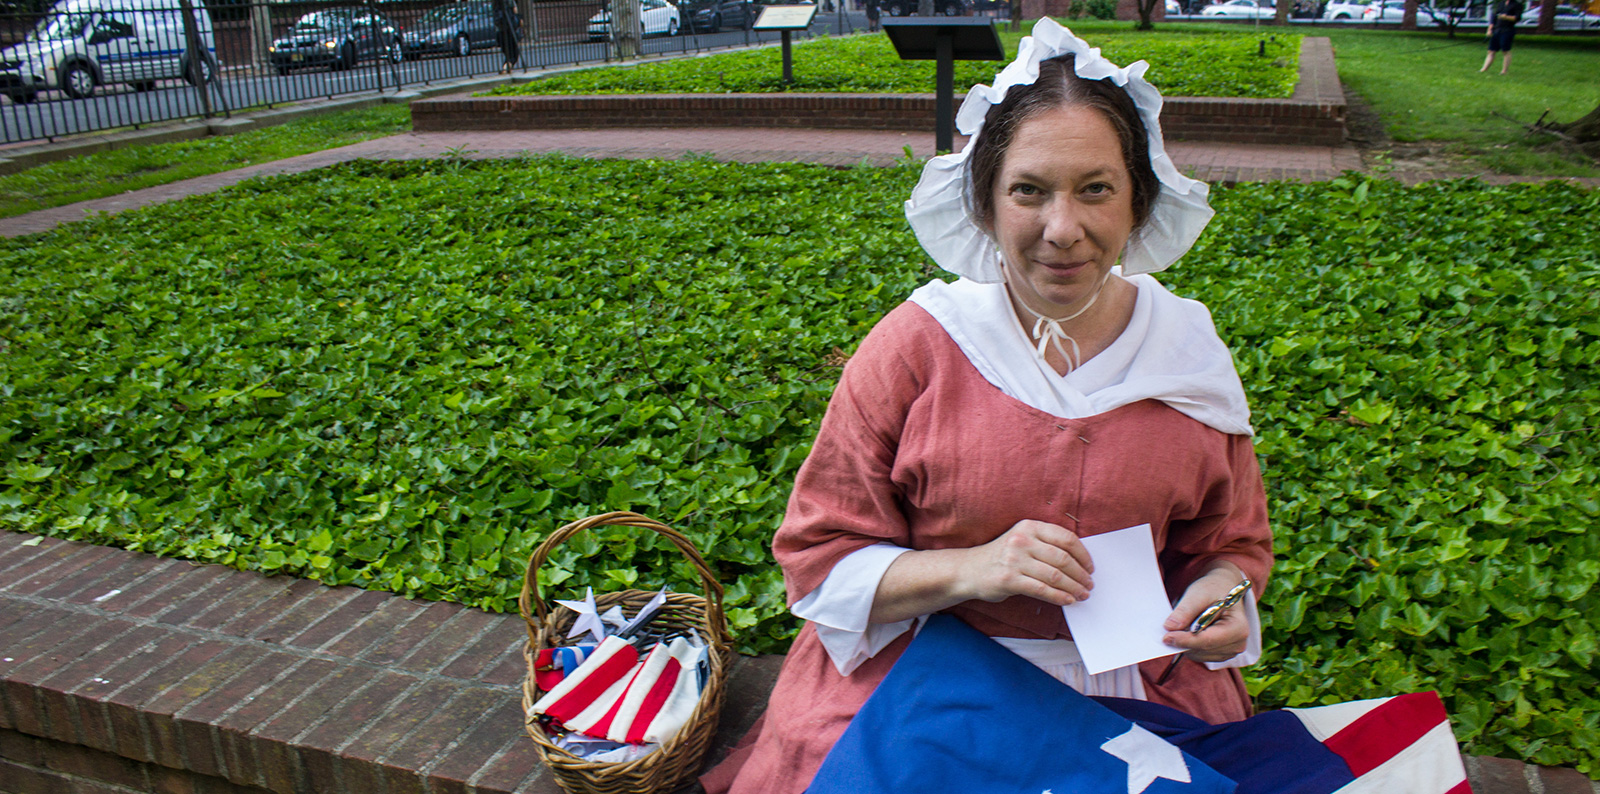 betsy ross interpreter on a bench